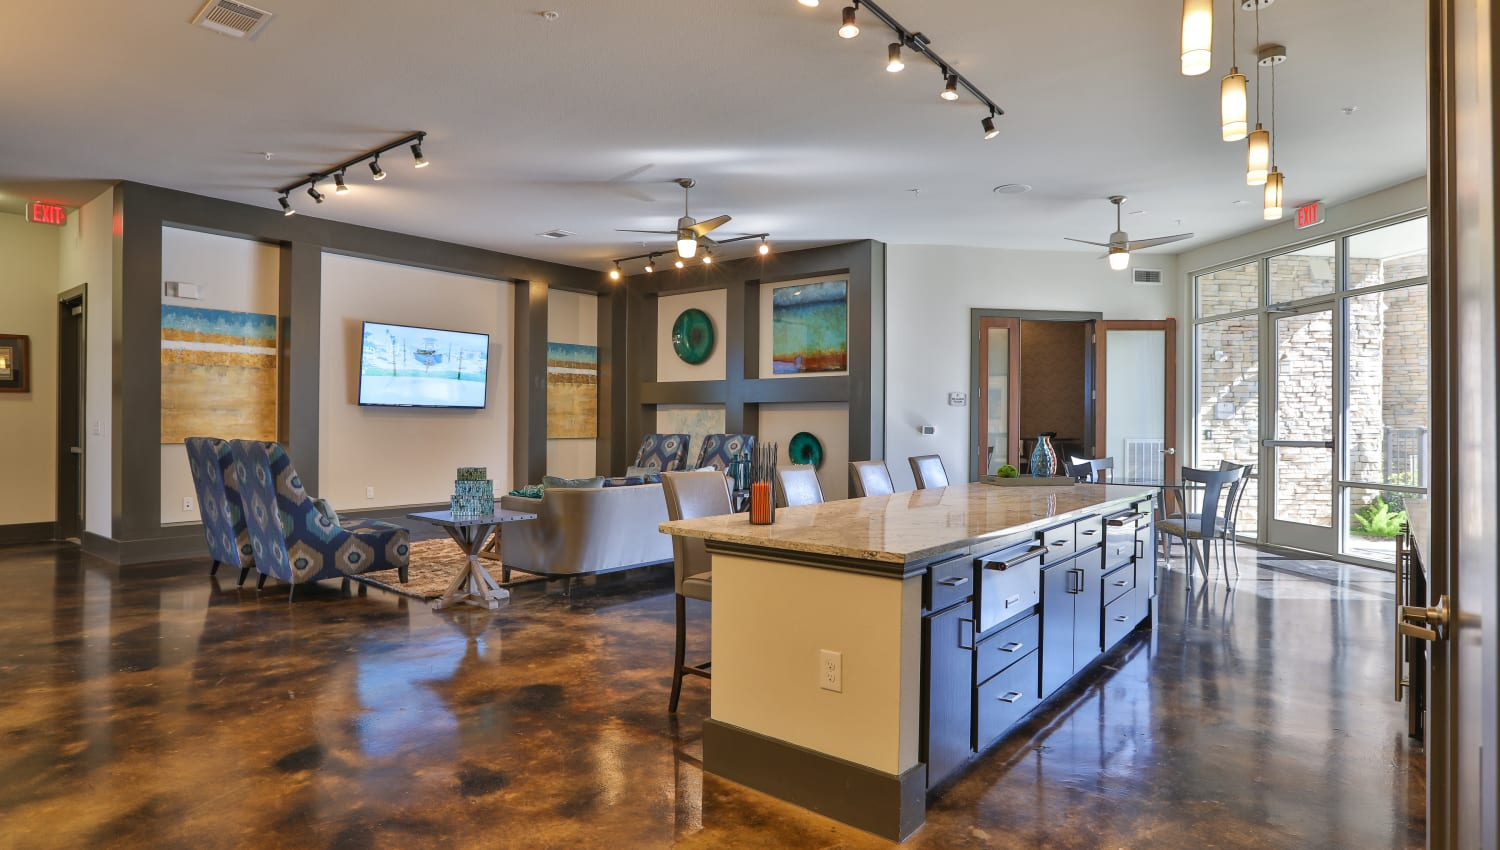 Lounge area and community kitchen area at Olympus at Waterside Estates in Richmond, Texas